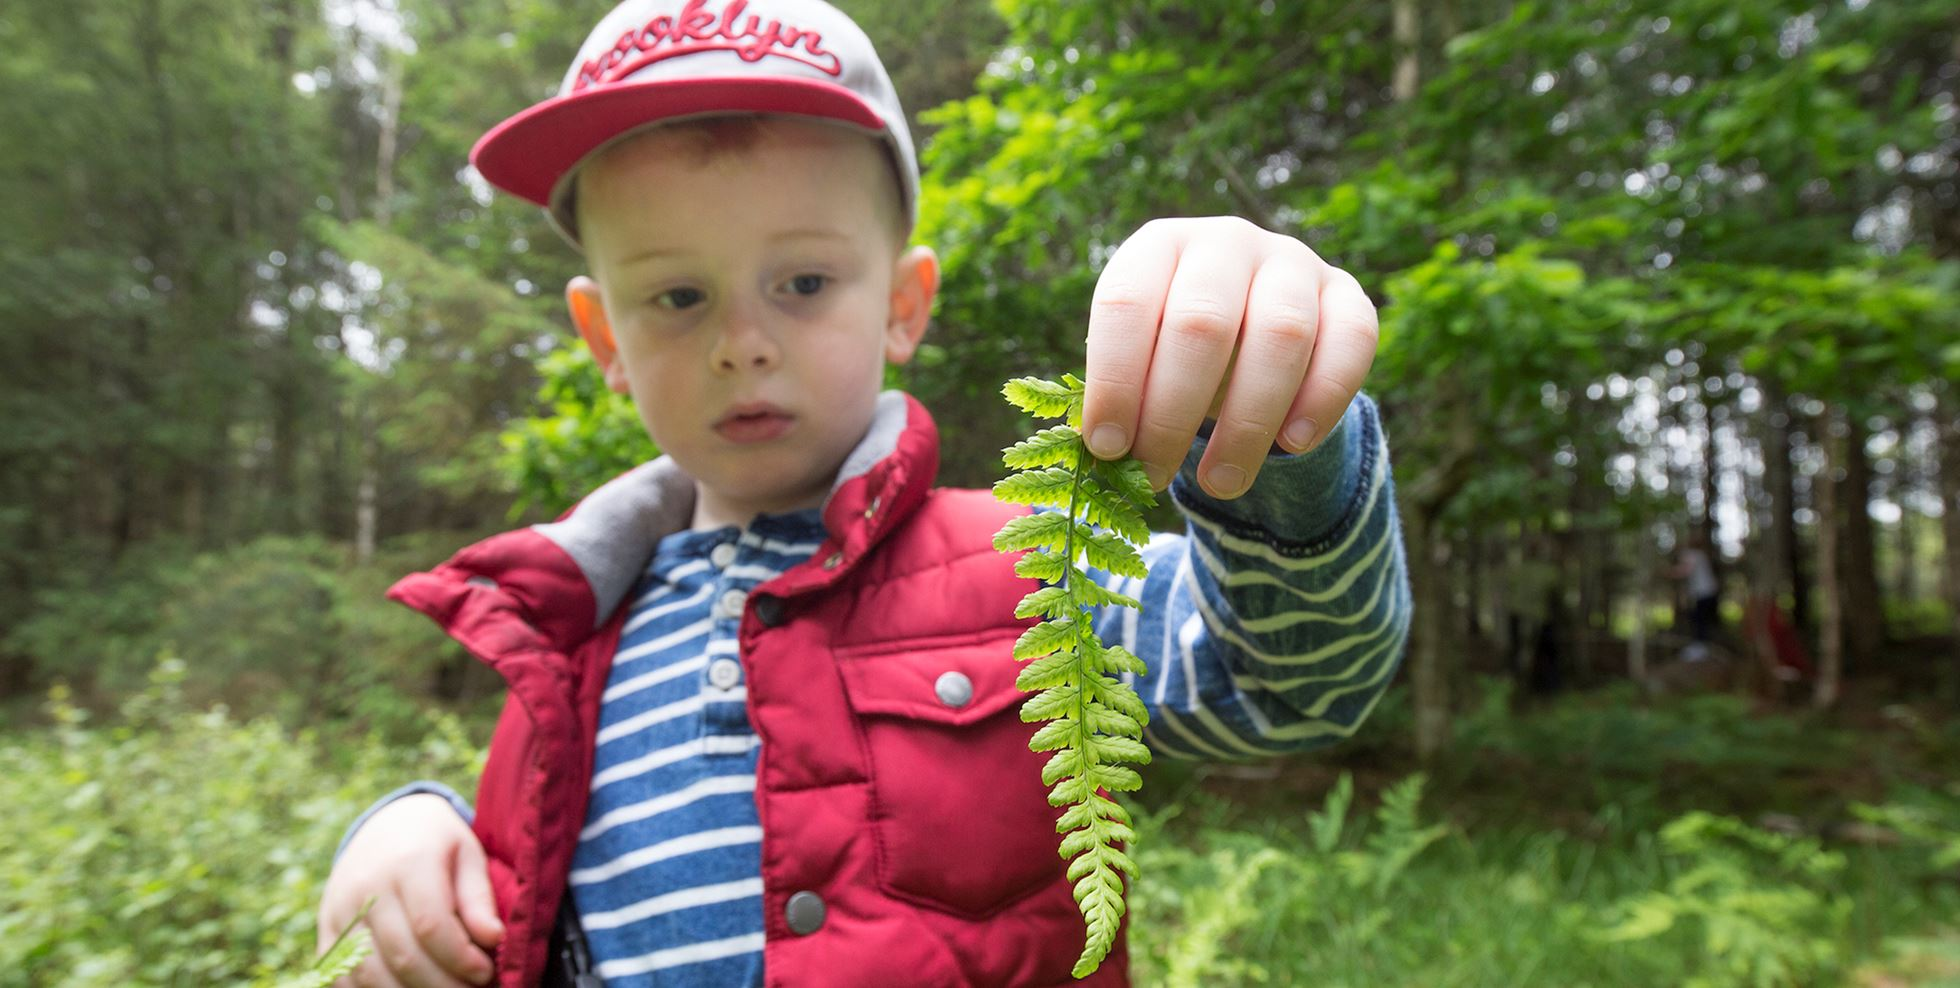 Young boy playing/exploring woodland as part of forest kindergarten session, Mucky Boots, Aberdeen Scotland. MR available